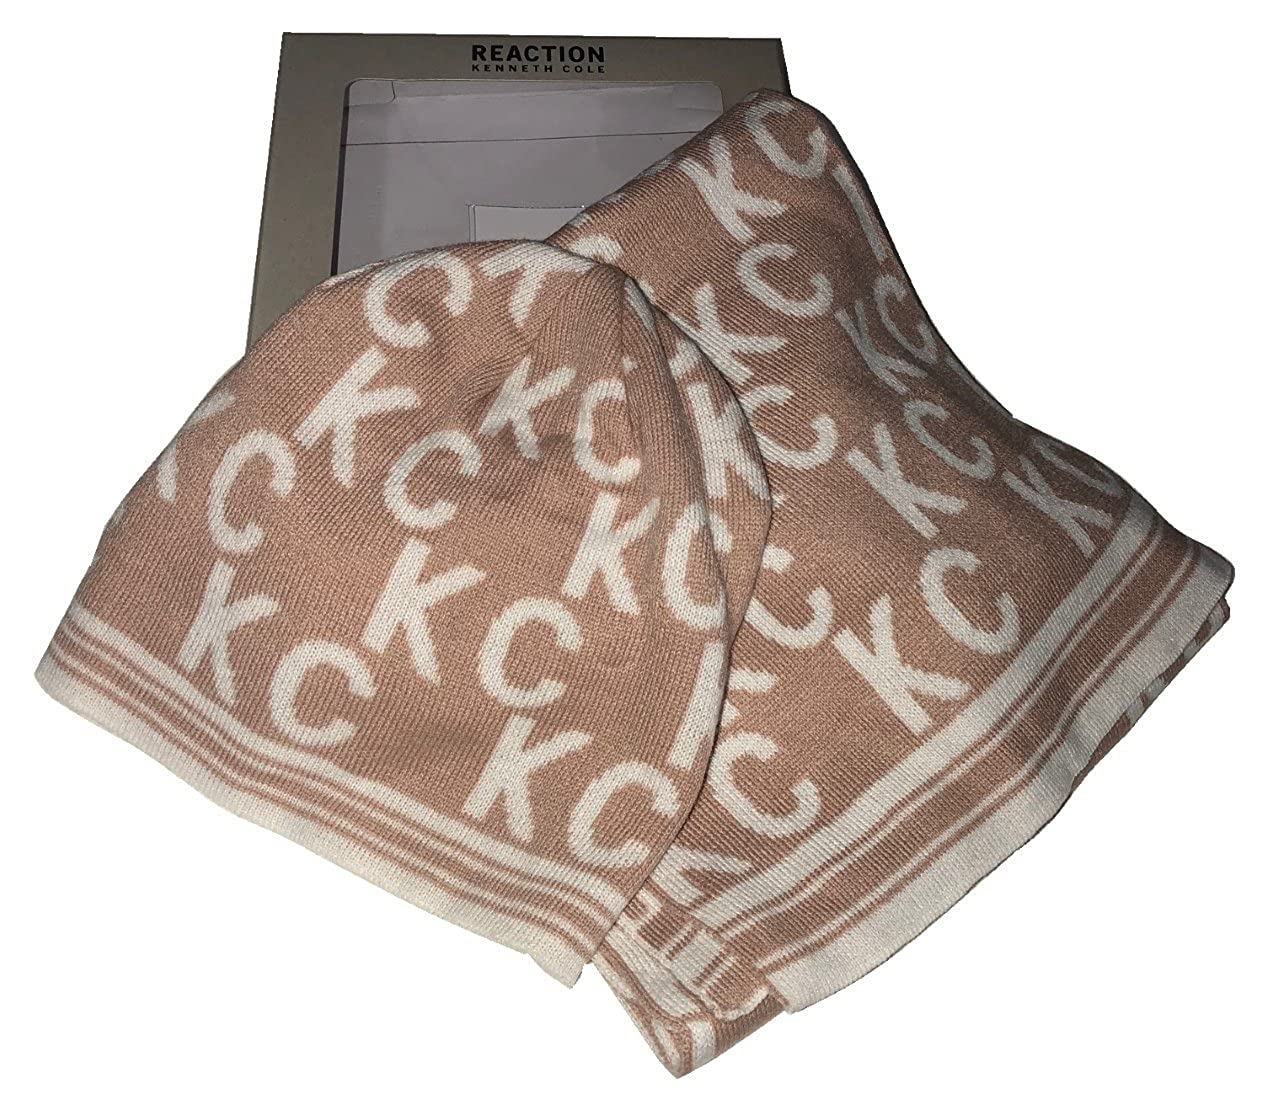 REACTION KENNETH COLE Signature KC Scarf   Beanie Set 56c7d667a35e